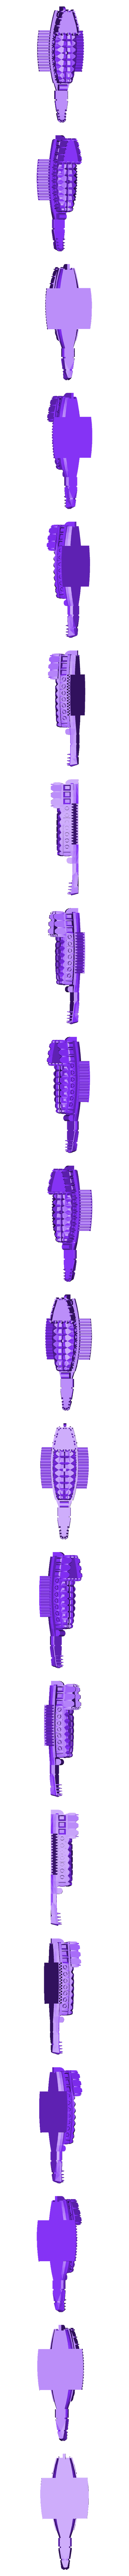 CrocshipPAT.stl Download STL file Crocodile Raider ship • 3D print object, barnEbiss2